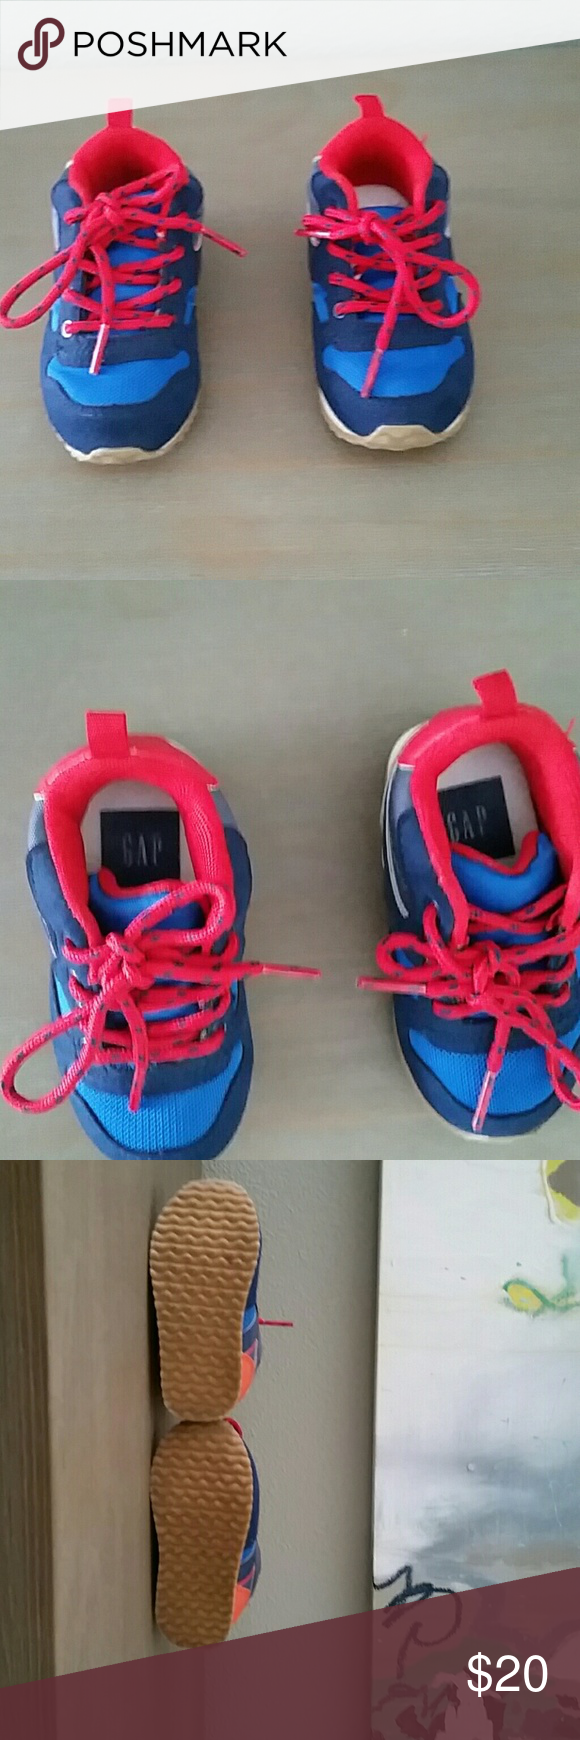 Baby boys Gap shoes New without box baby boy's gap sneakers | hiker midto|  night sky | size 6 | GAP Shoes